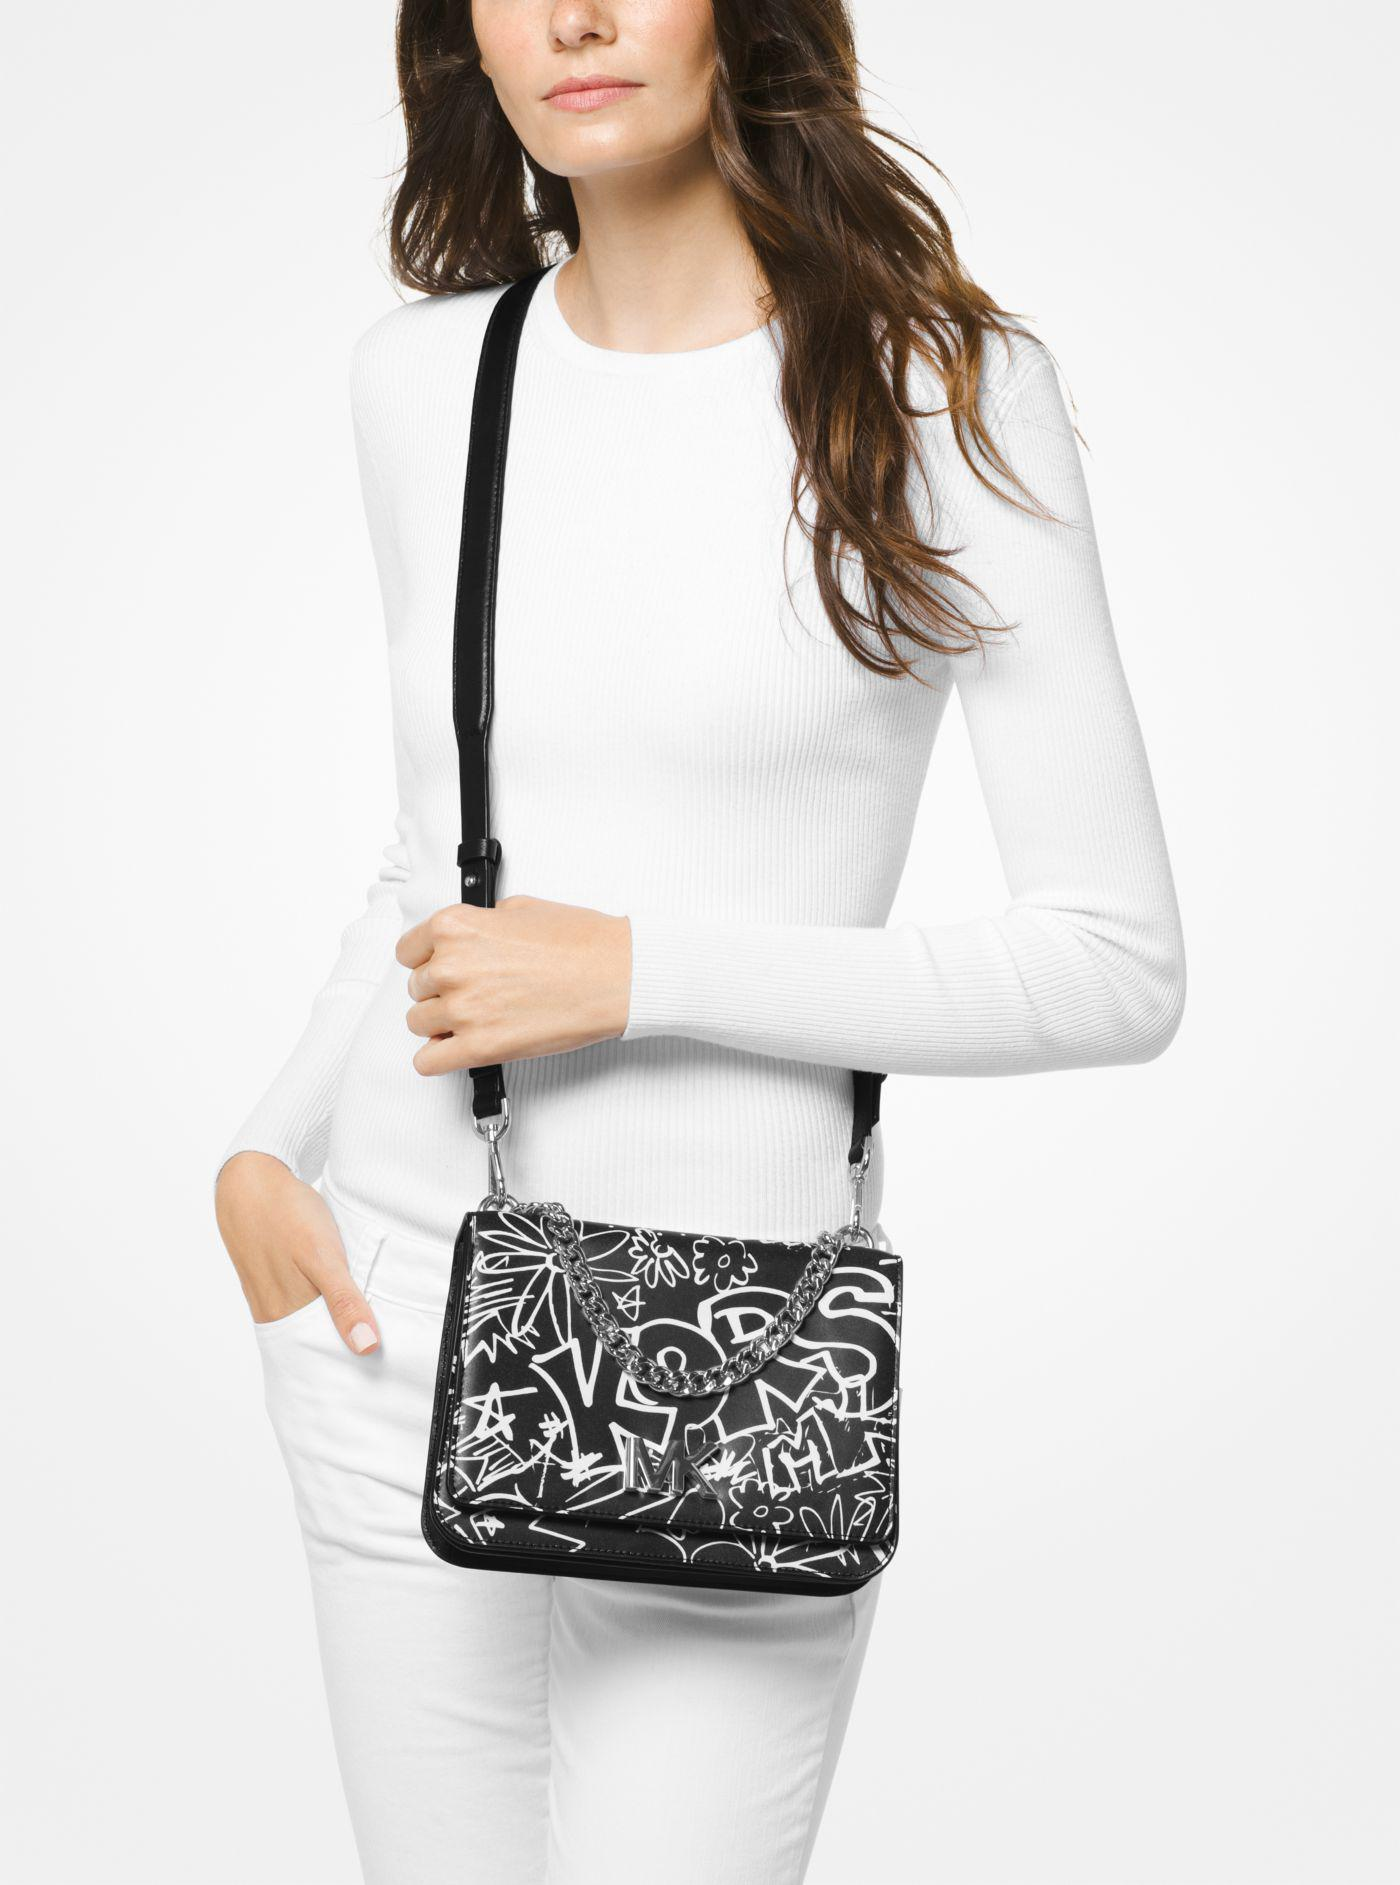 b2fab92626cd Michael Kors Mott Large Graffiti Leather Crossbody in Black - Lyst